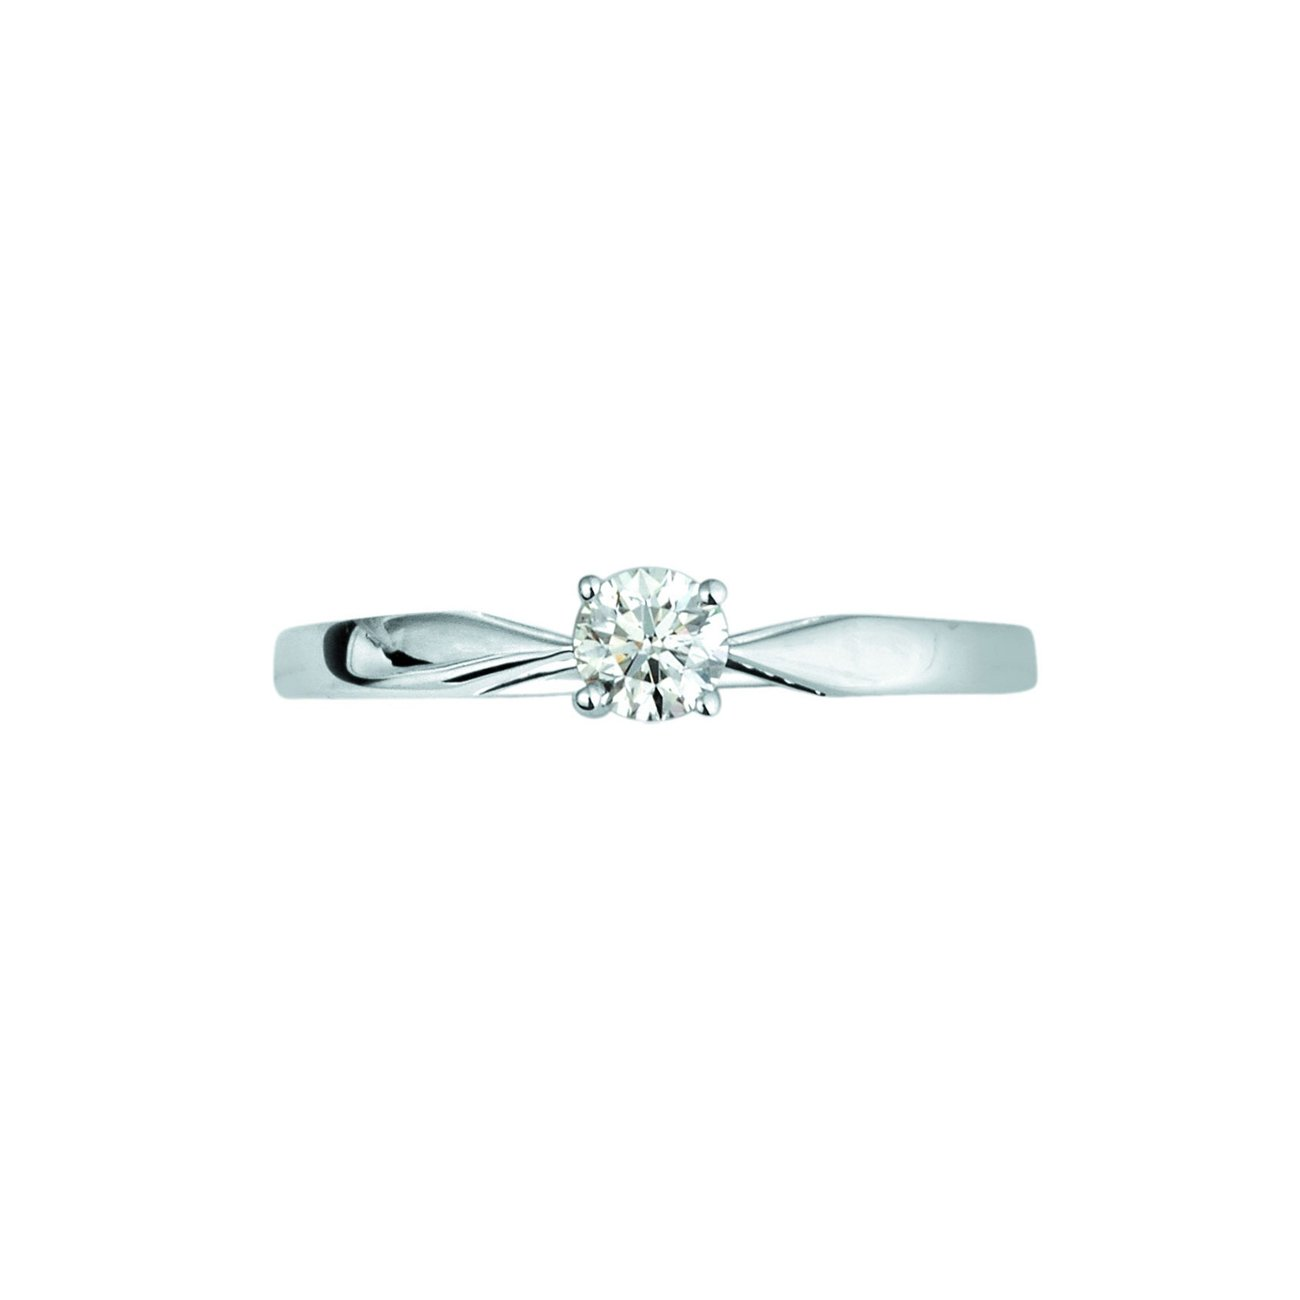 Bague en or blanc et diamants de 0.23ct